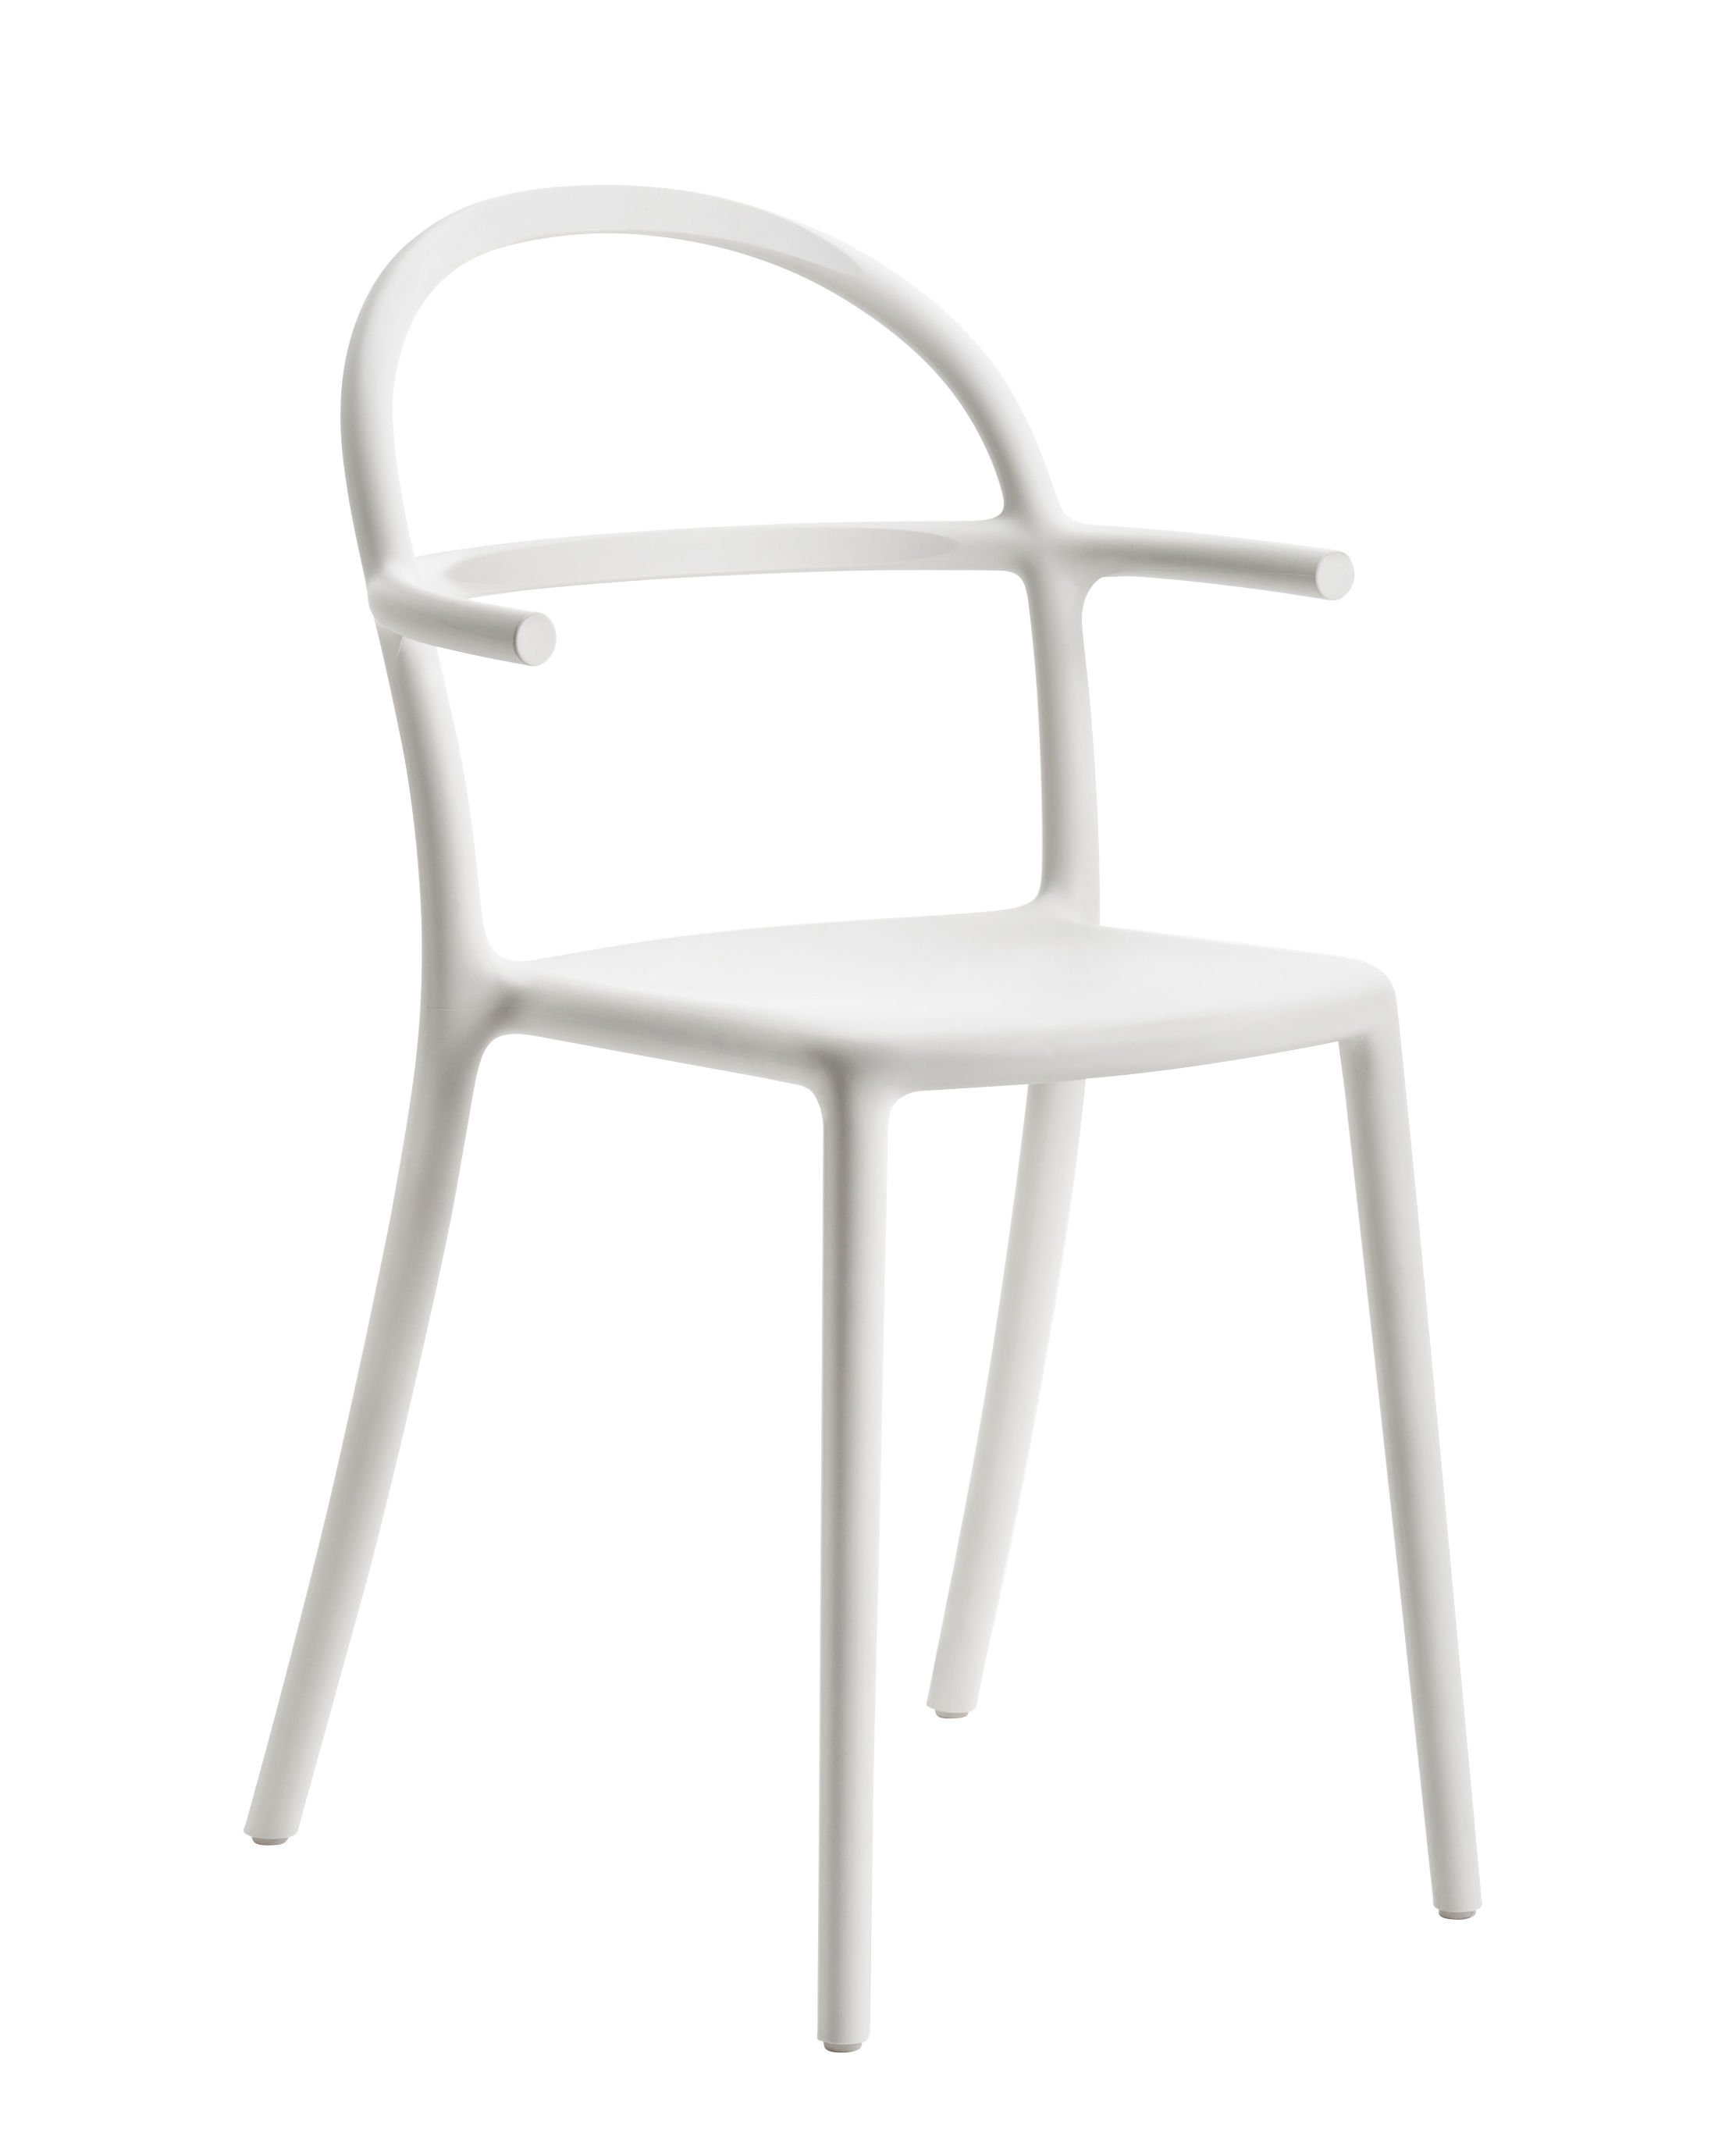 Furniture - Chairs - Generic C Stackable armchair - / Polypropylene by Kartell - White - Polypropylene